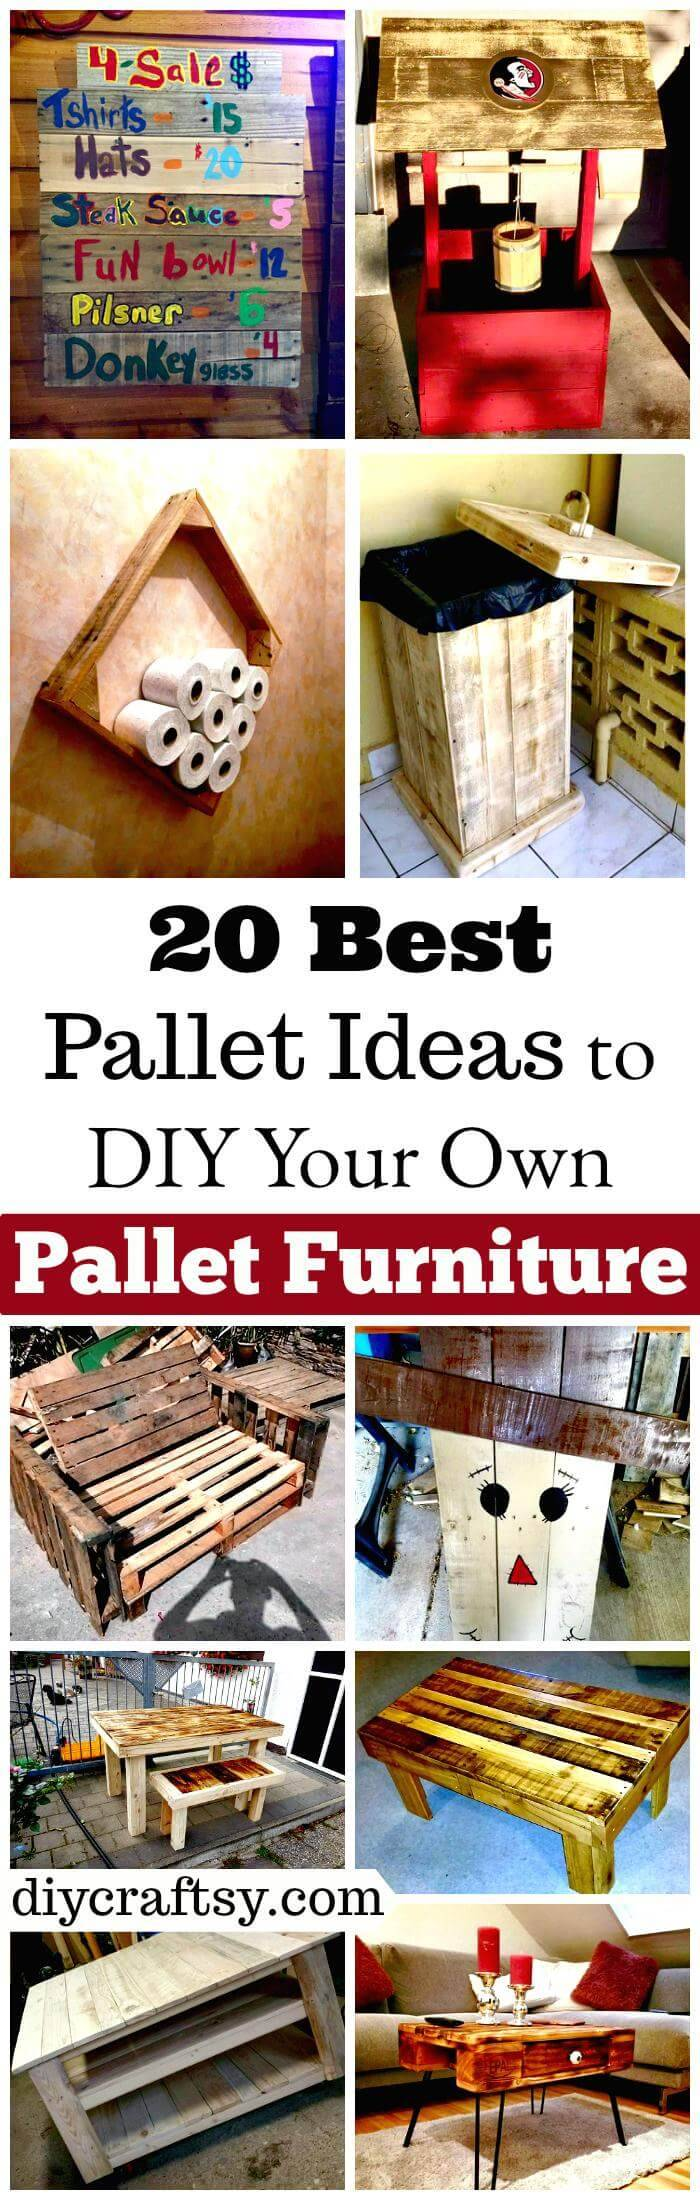 20 Best Pallet Ideas To DIY Your Own Furniture